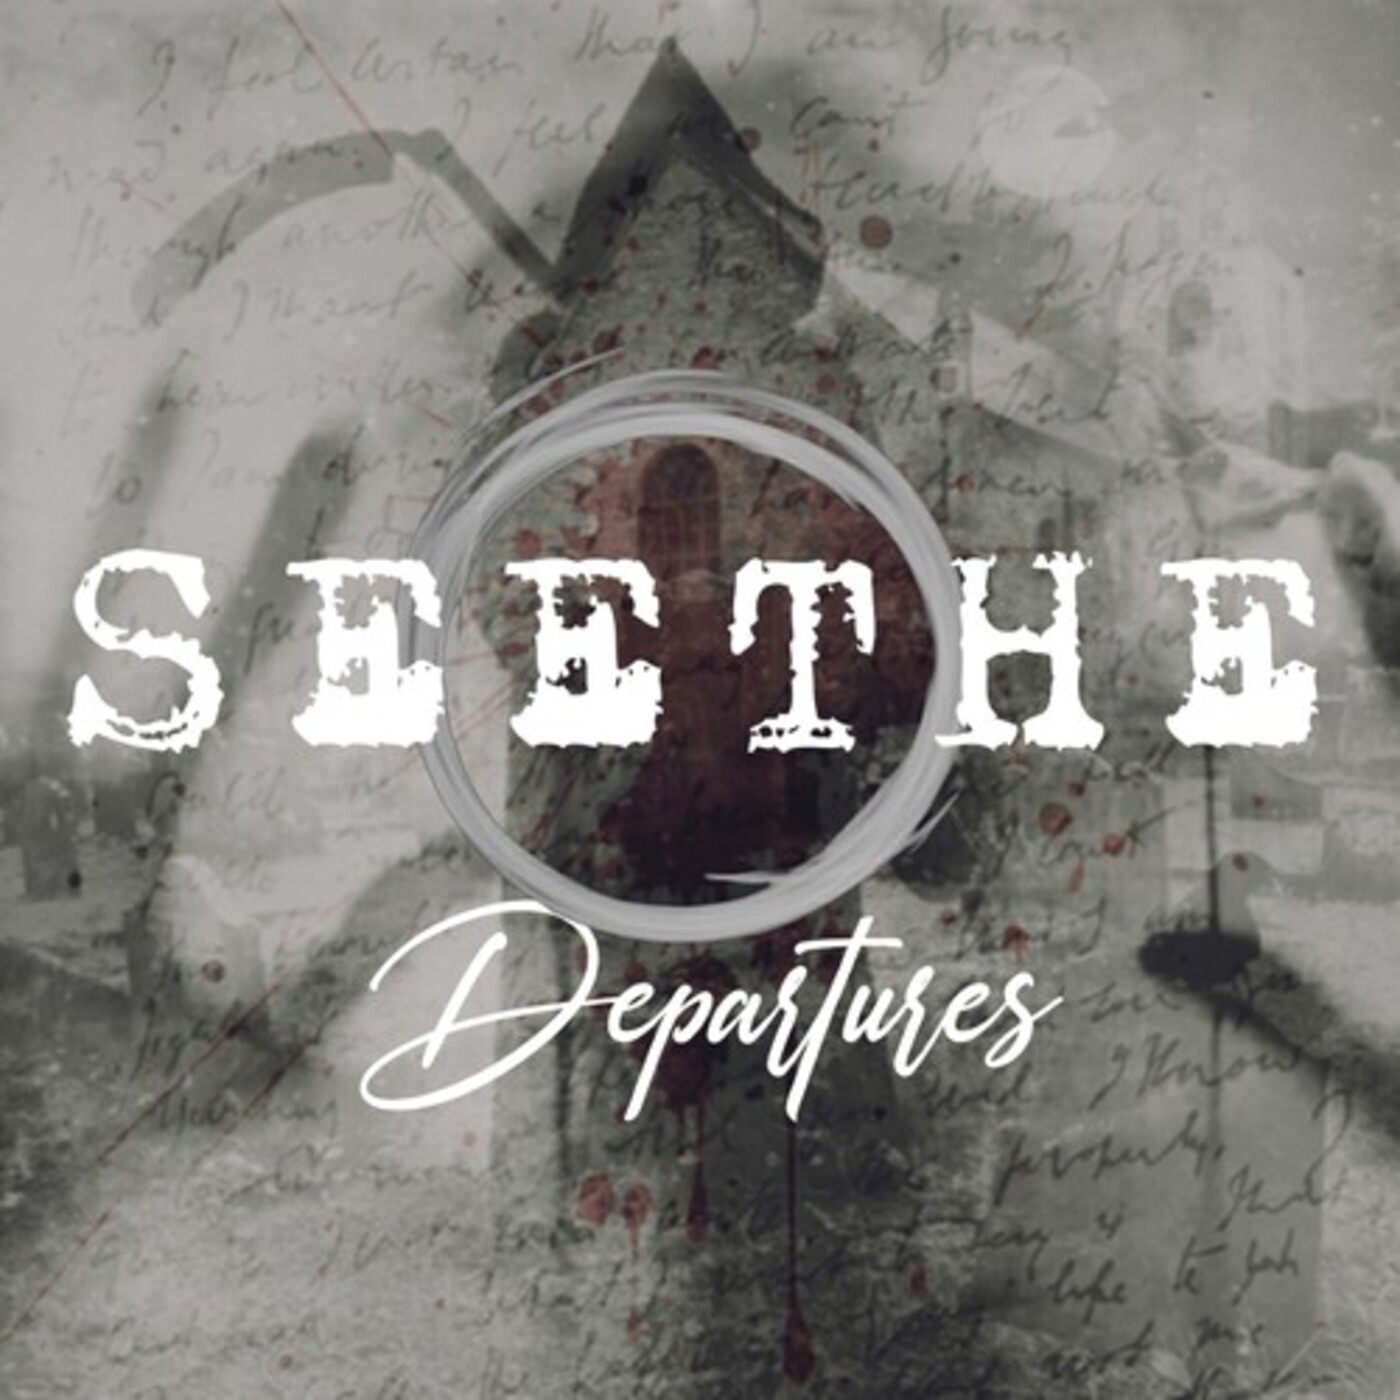 Seethe's new album 'Departures' is out now!